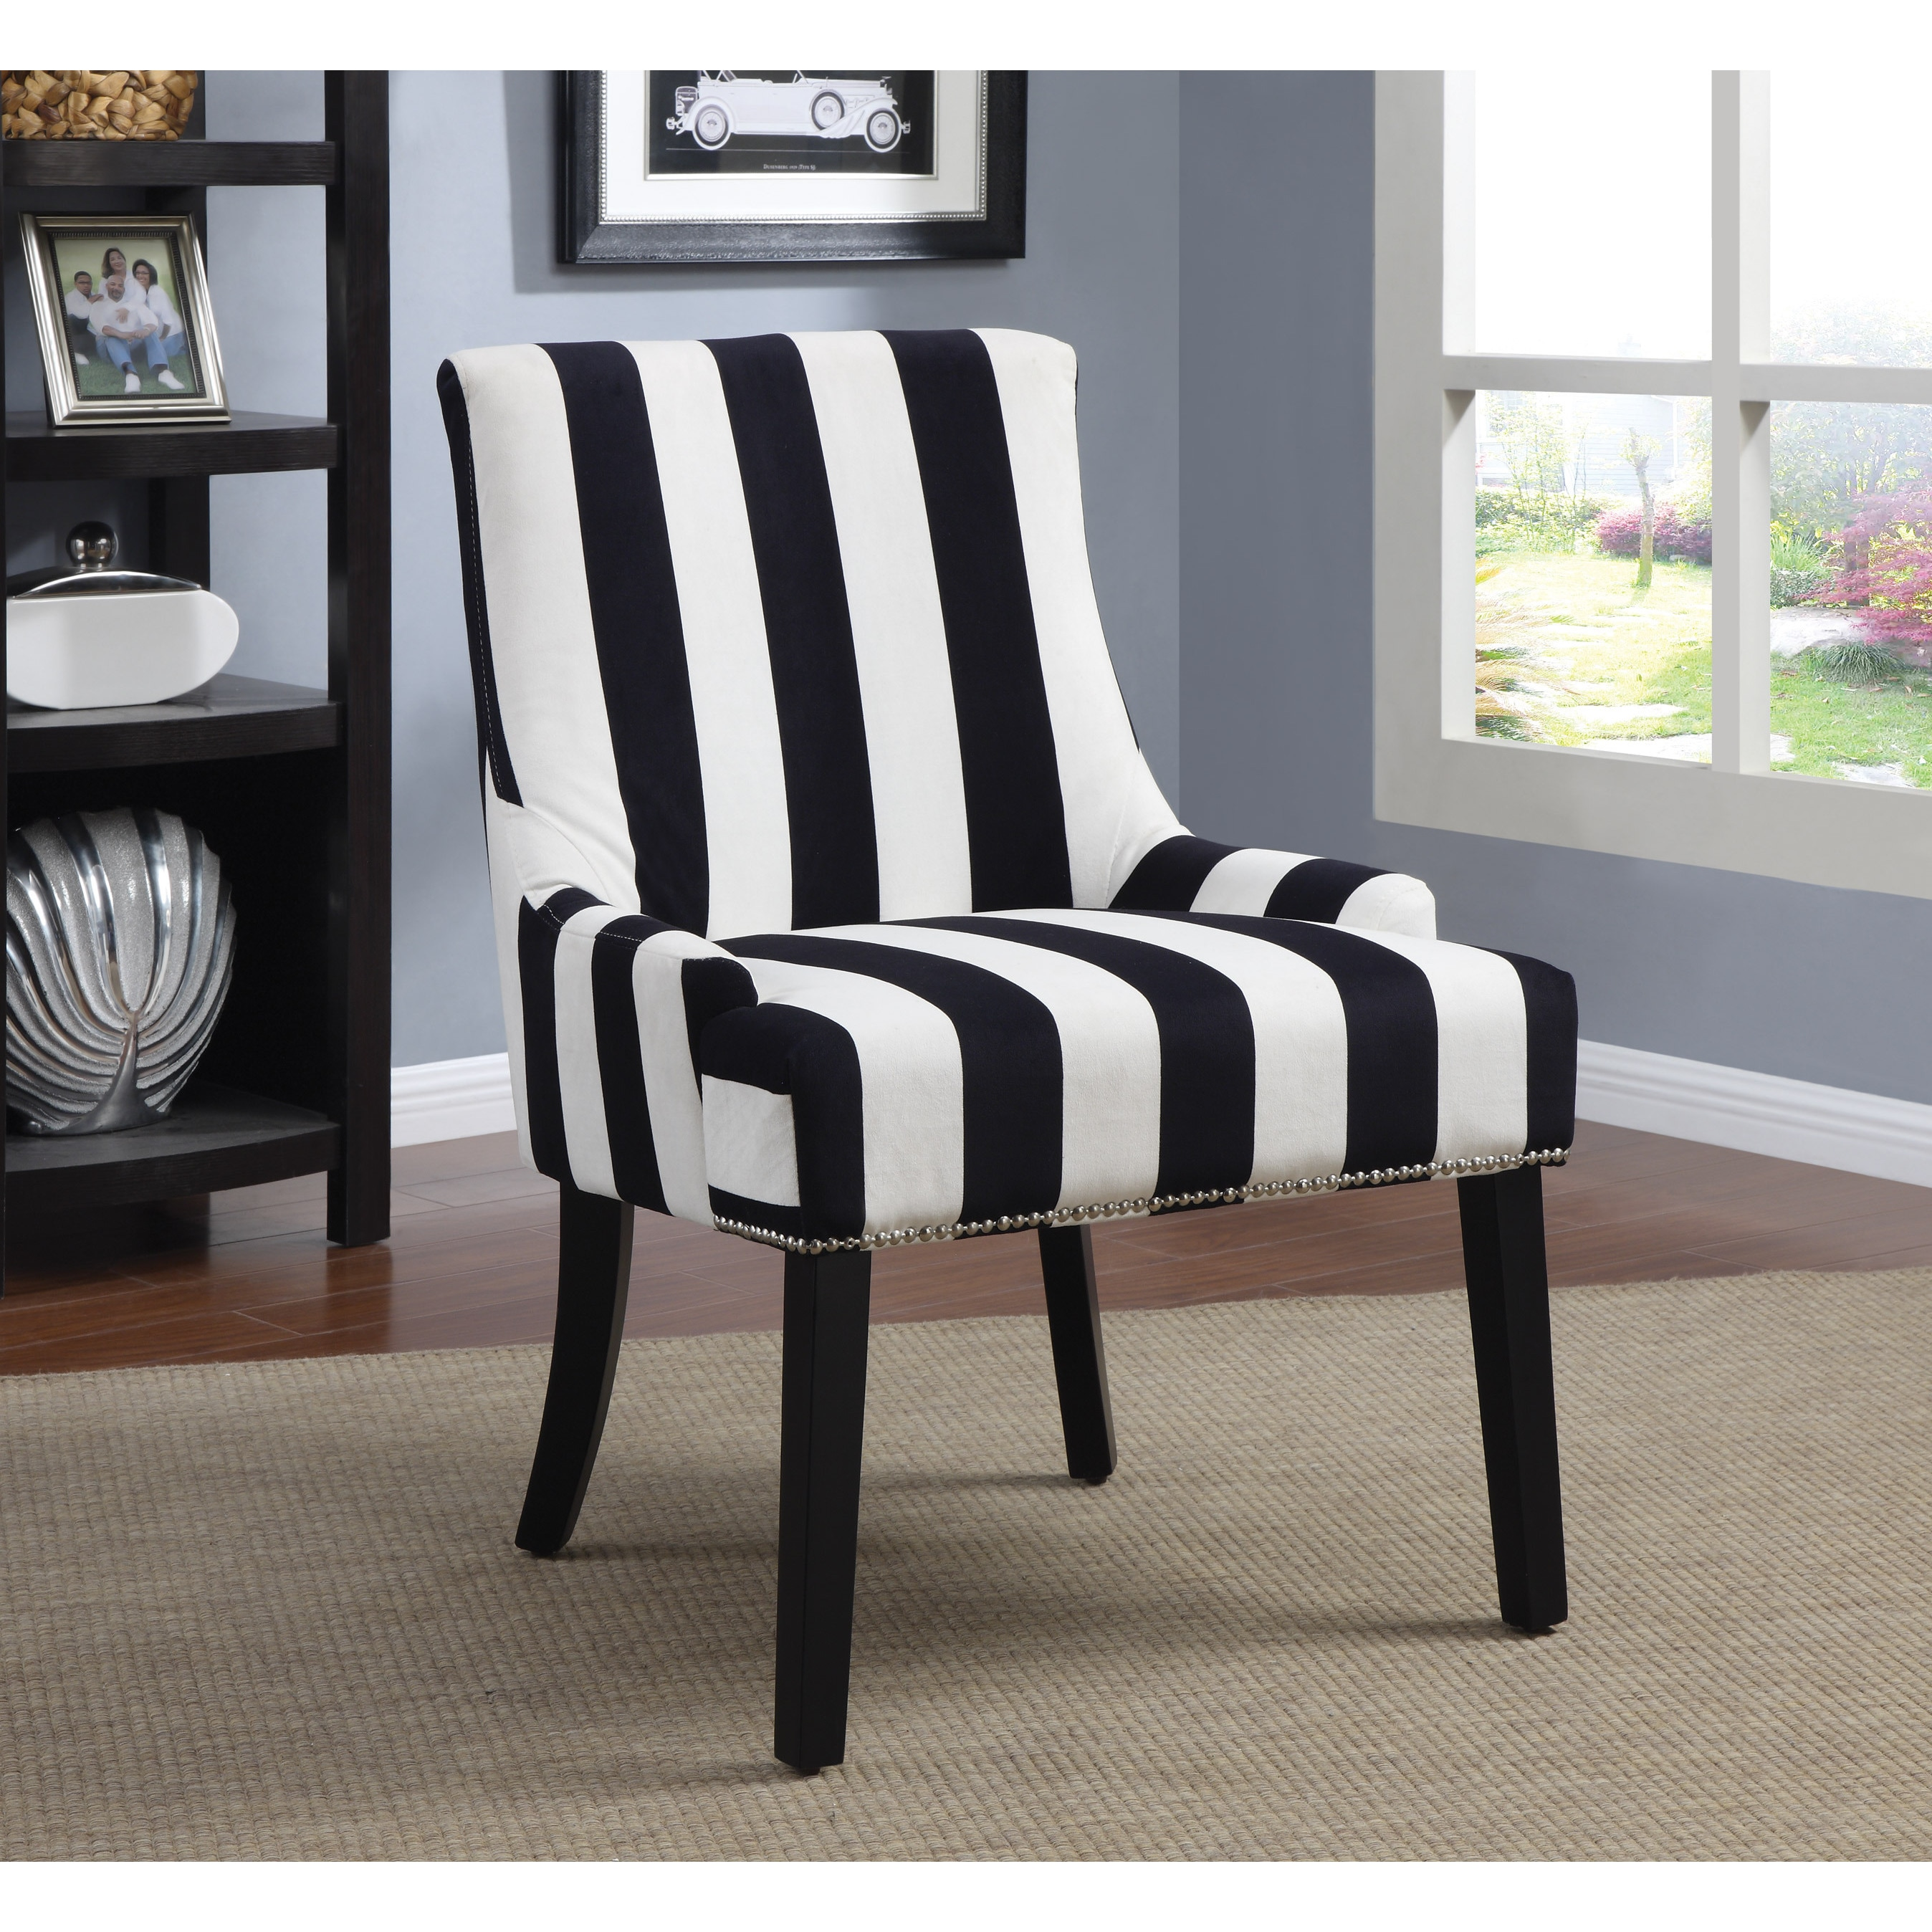 Shop Transitional Midnight Blue And White Accent Chair Free